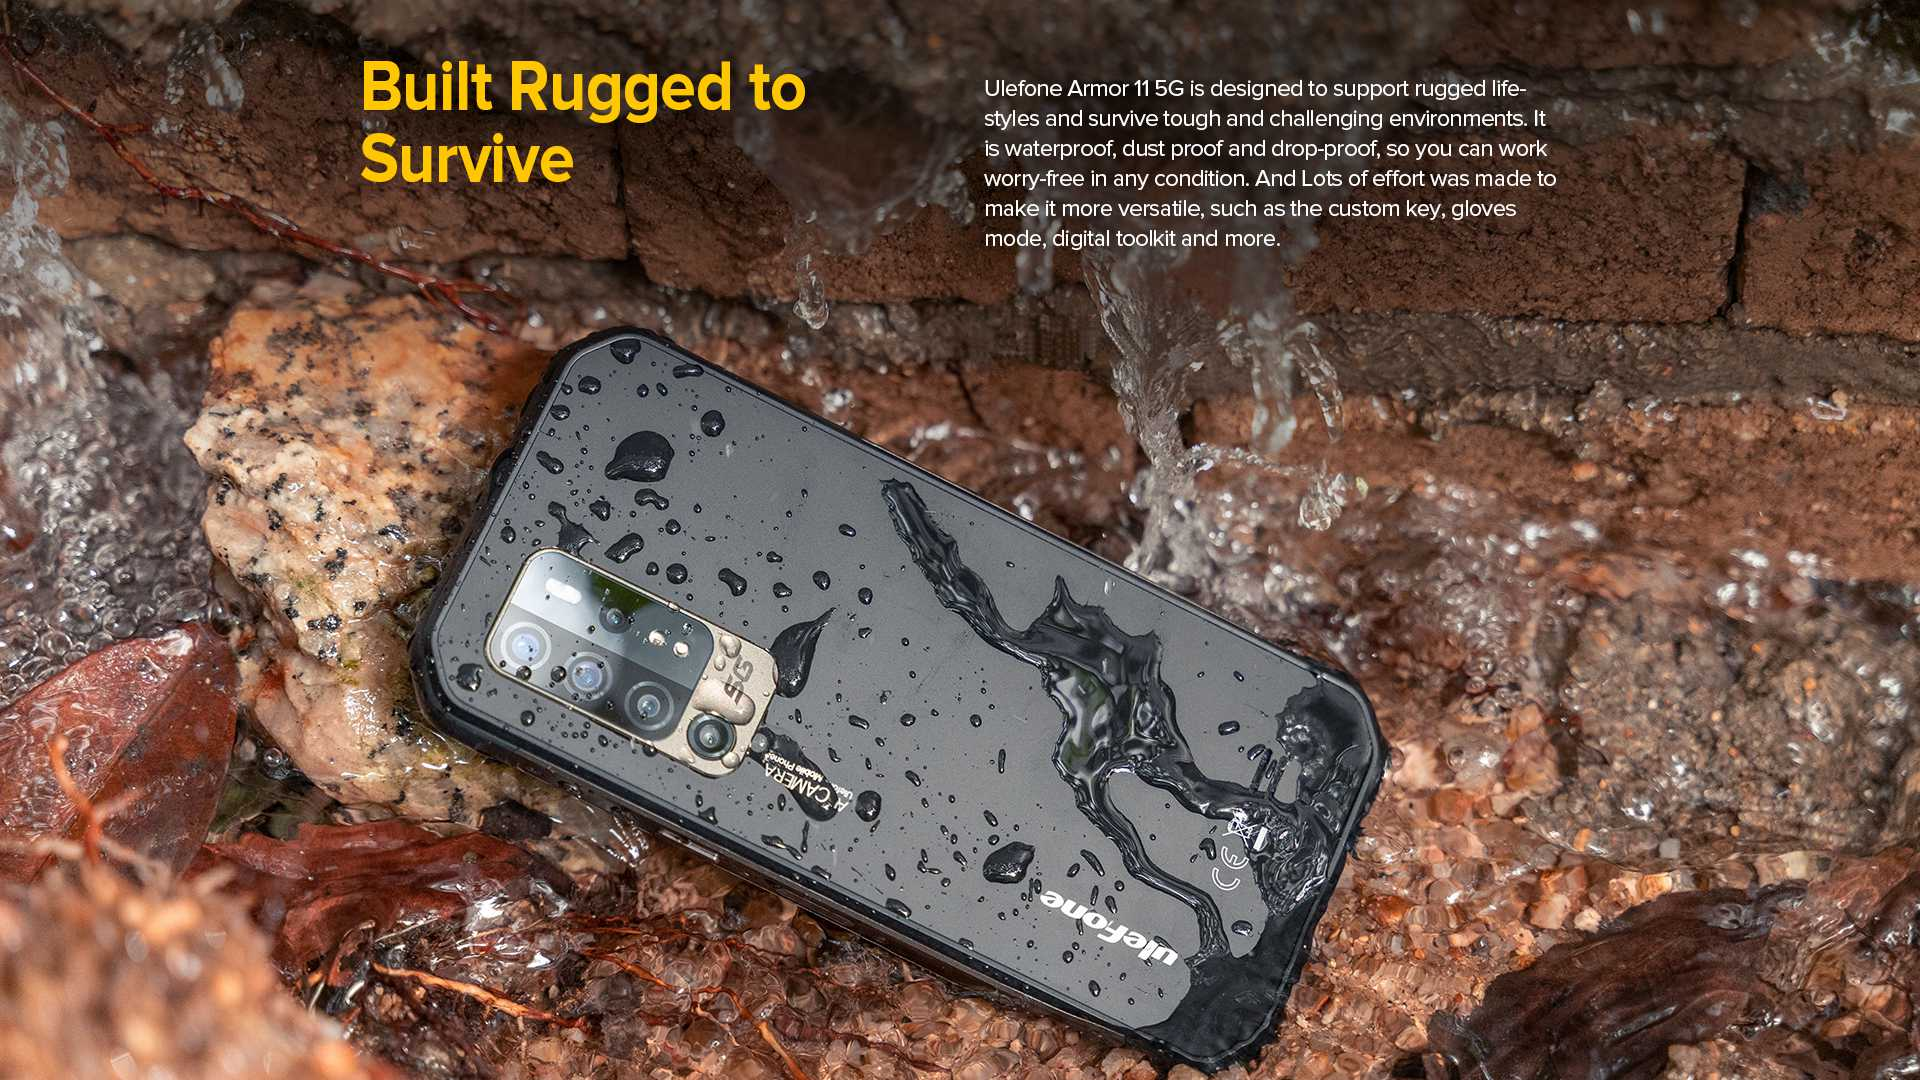 Ulefone Armor 11 Rugged and Durable